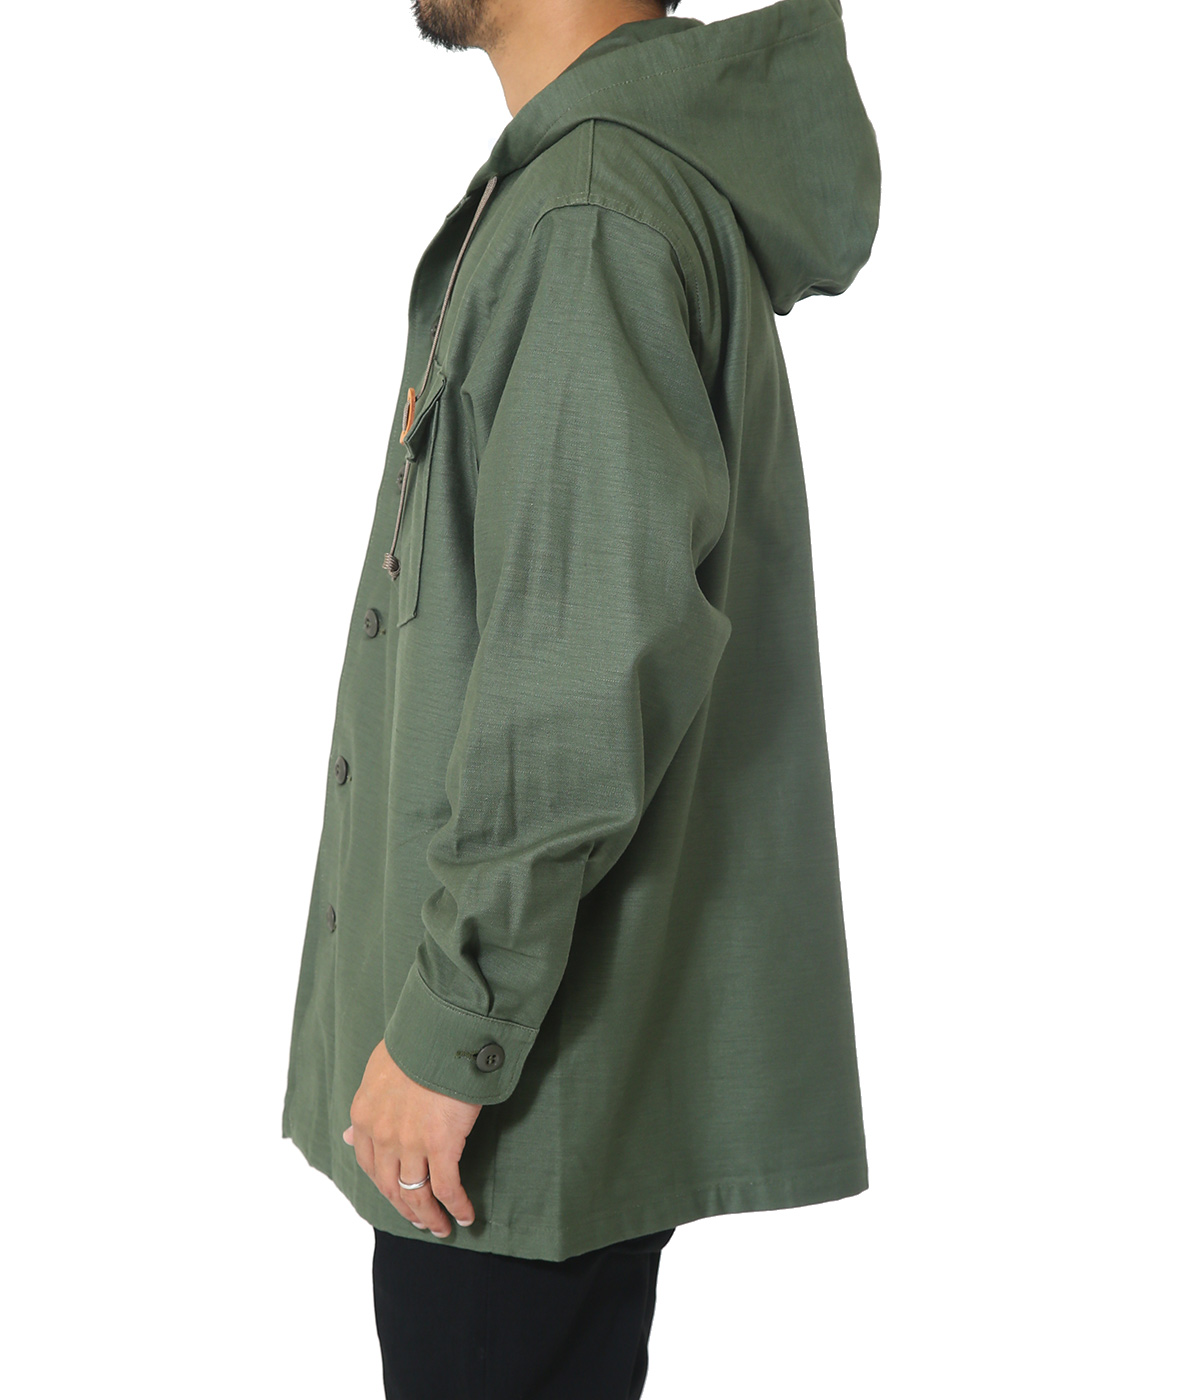 US ARMY HOODED SHIRT JACKET